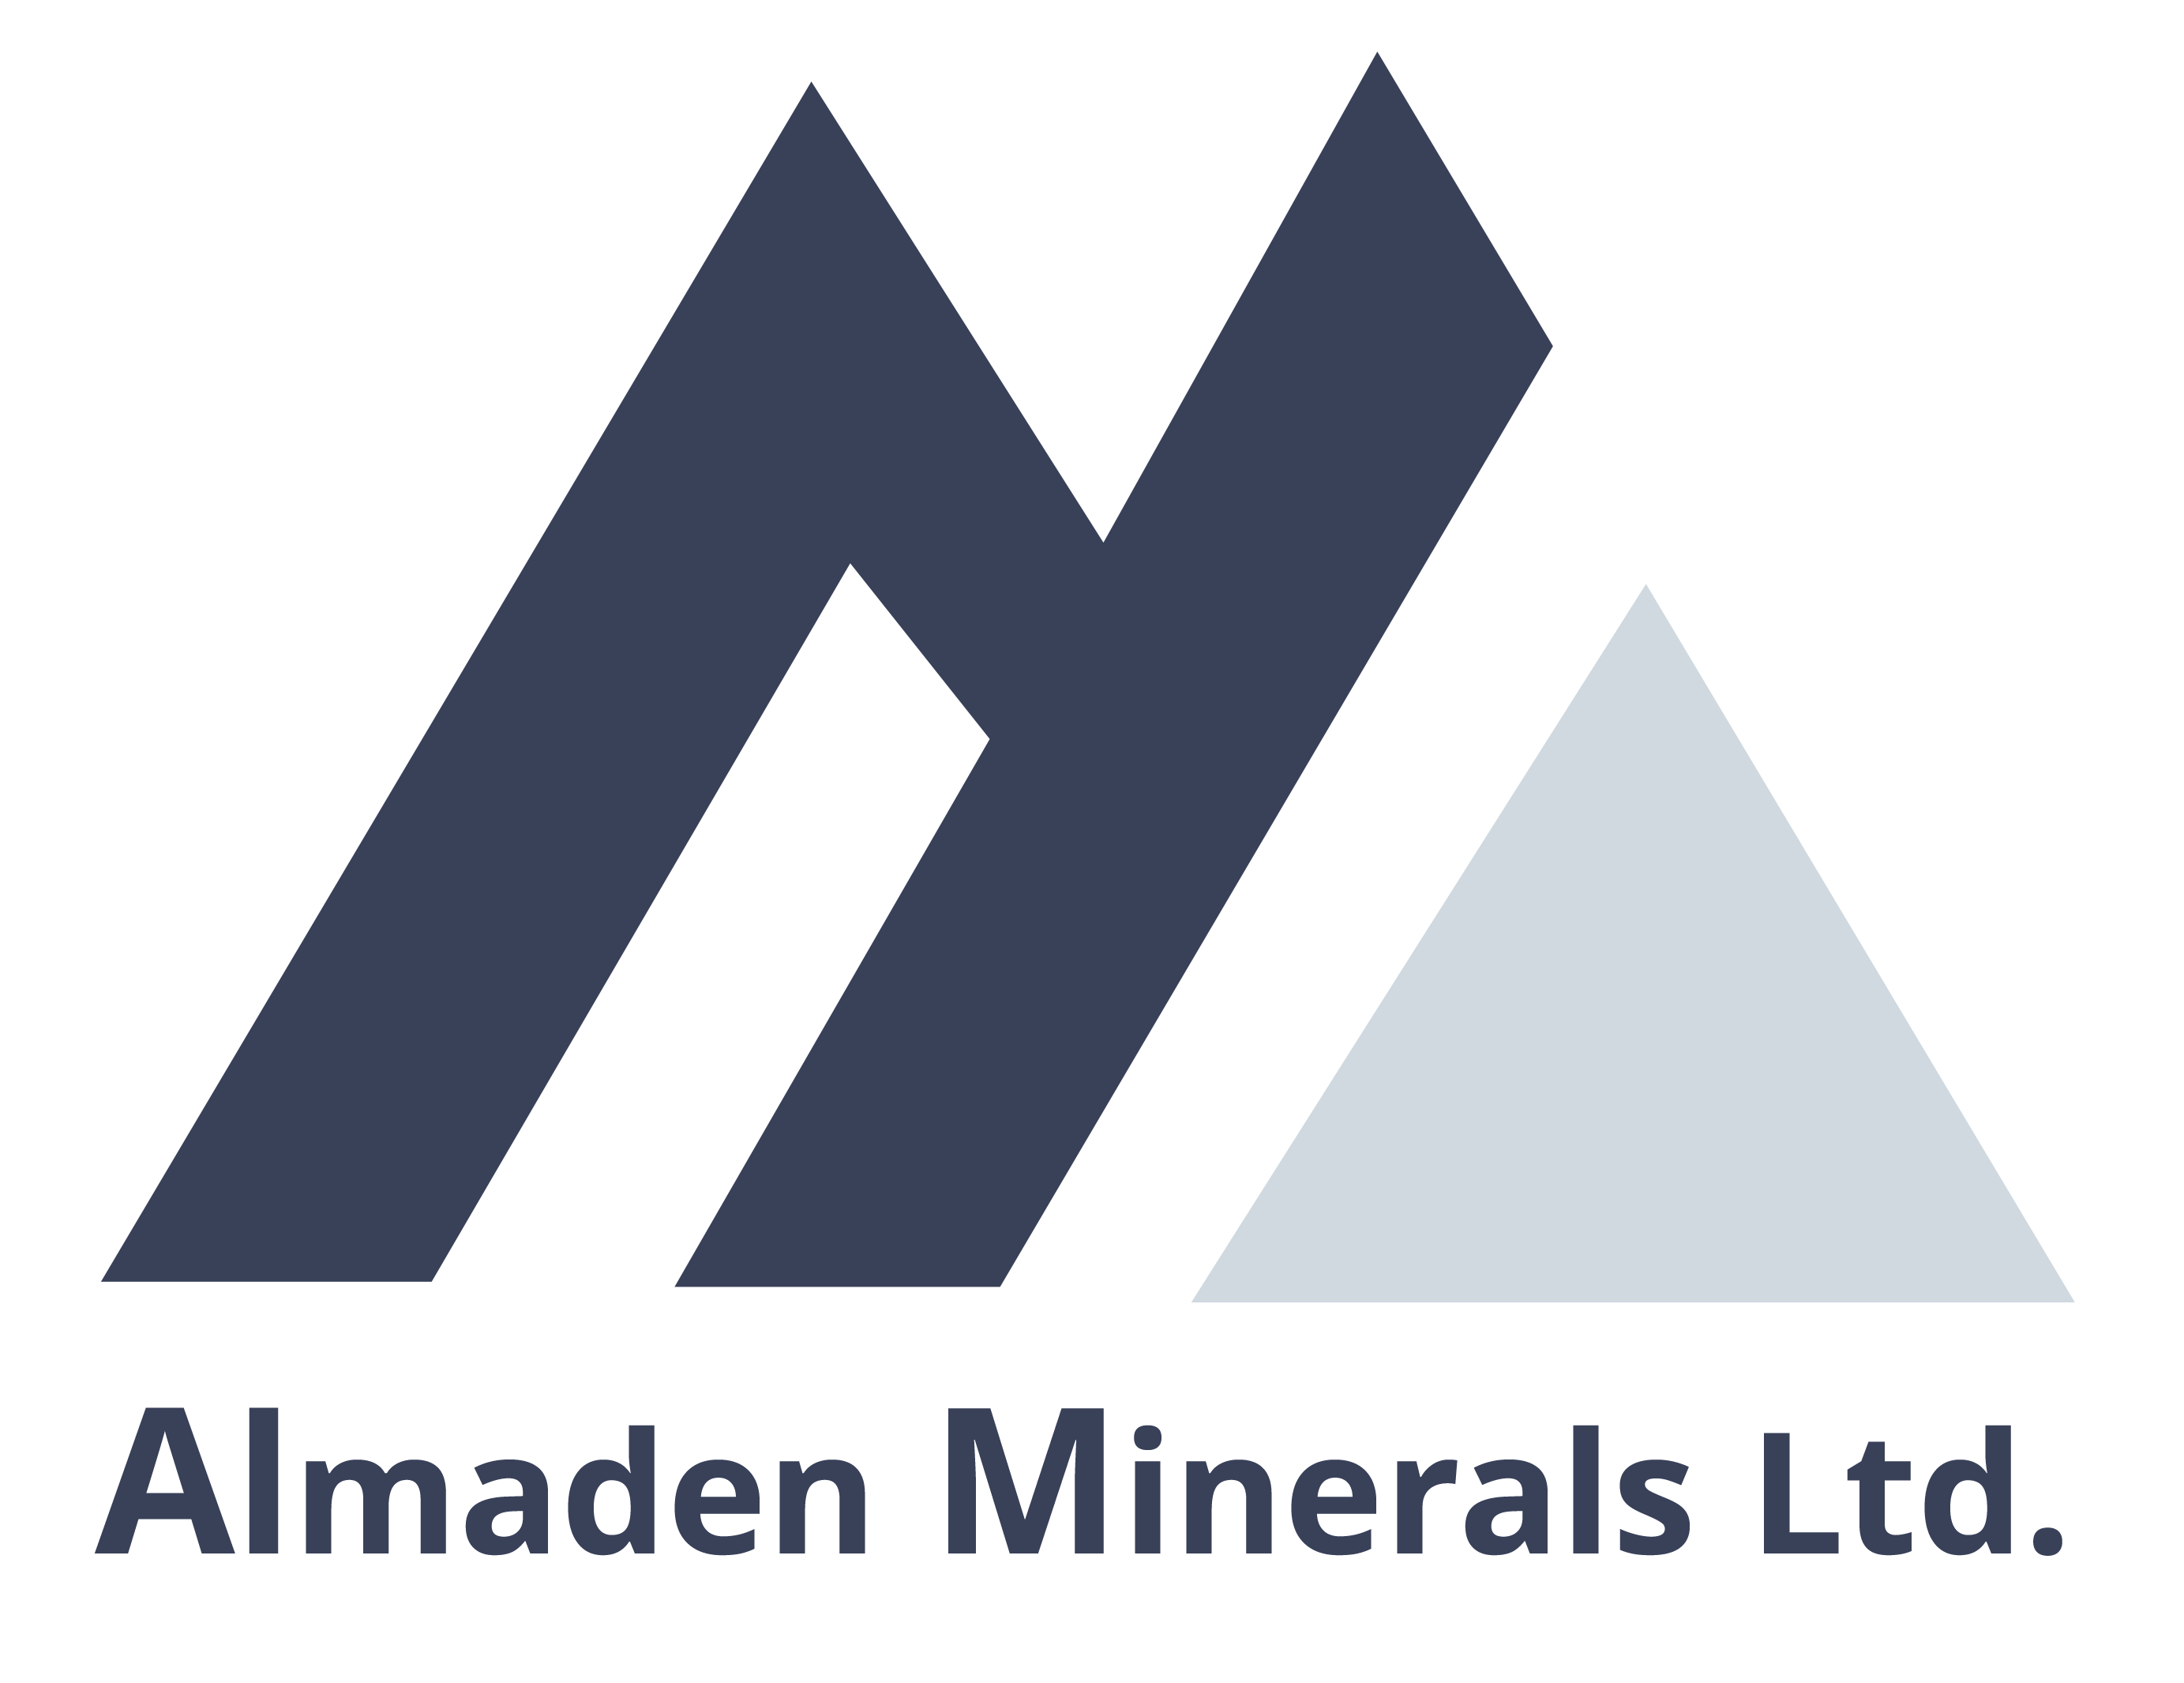 Almaden Announces Court Decision in respect of Environmental Permit Application for the Ixtaca Precious Metals Project, Mexico